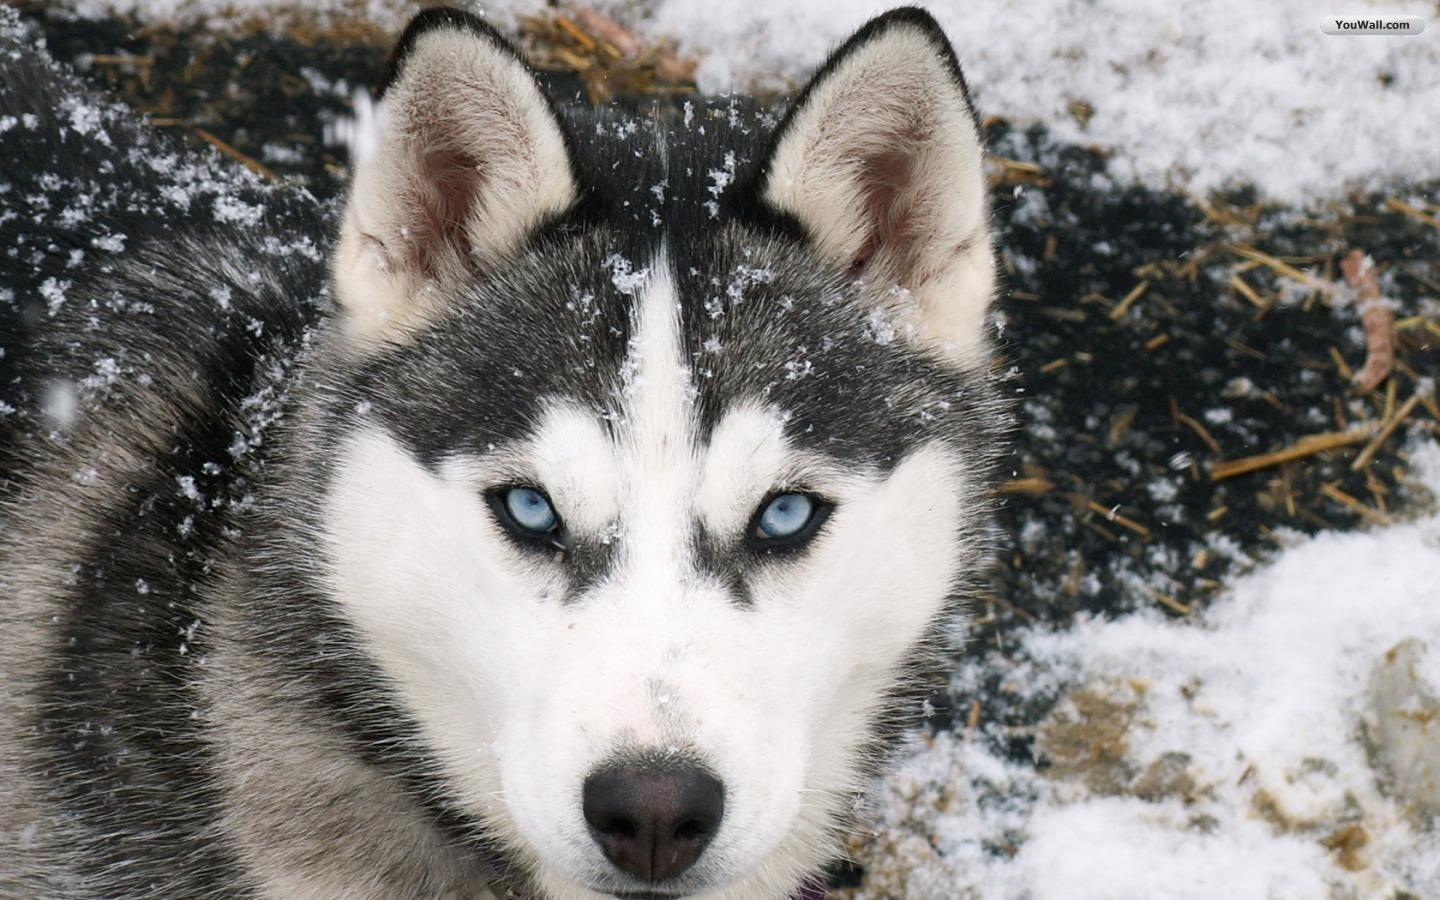 Husky Wallpaper: Terrific Funny Husky Wallpaper Hd Animal Pictures 1440x900px